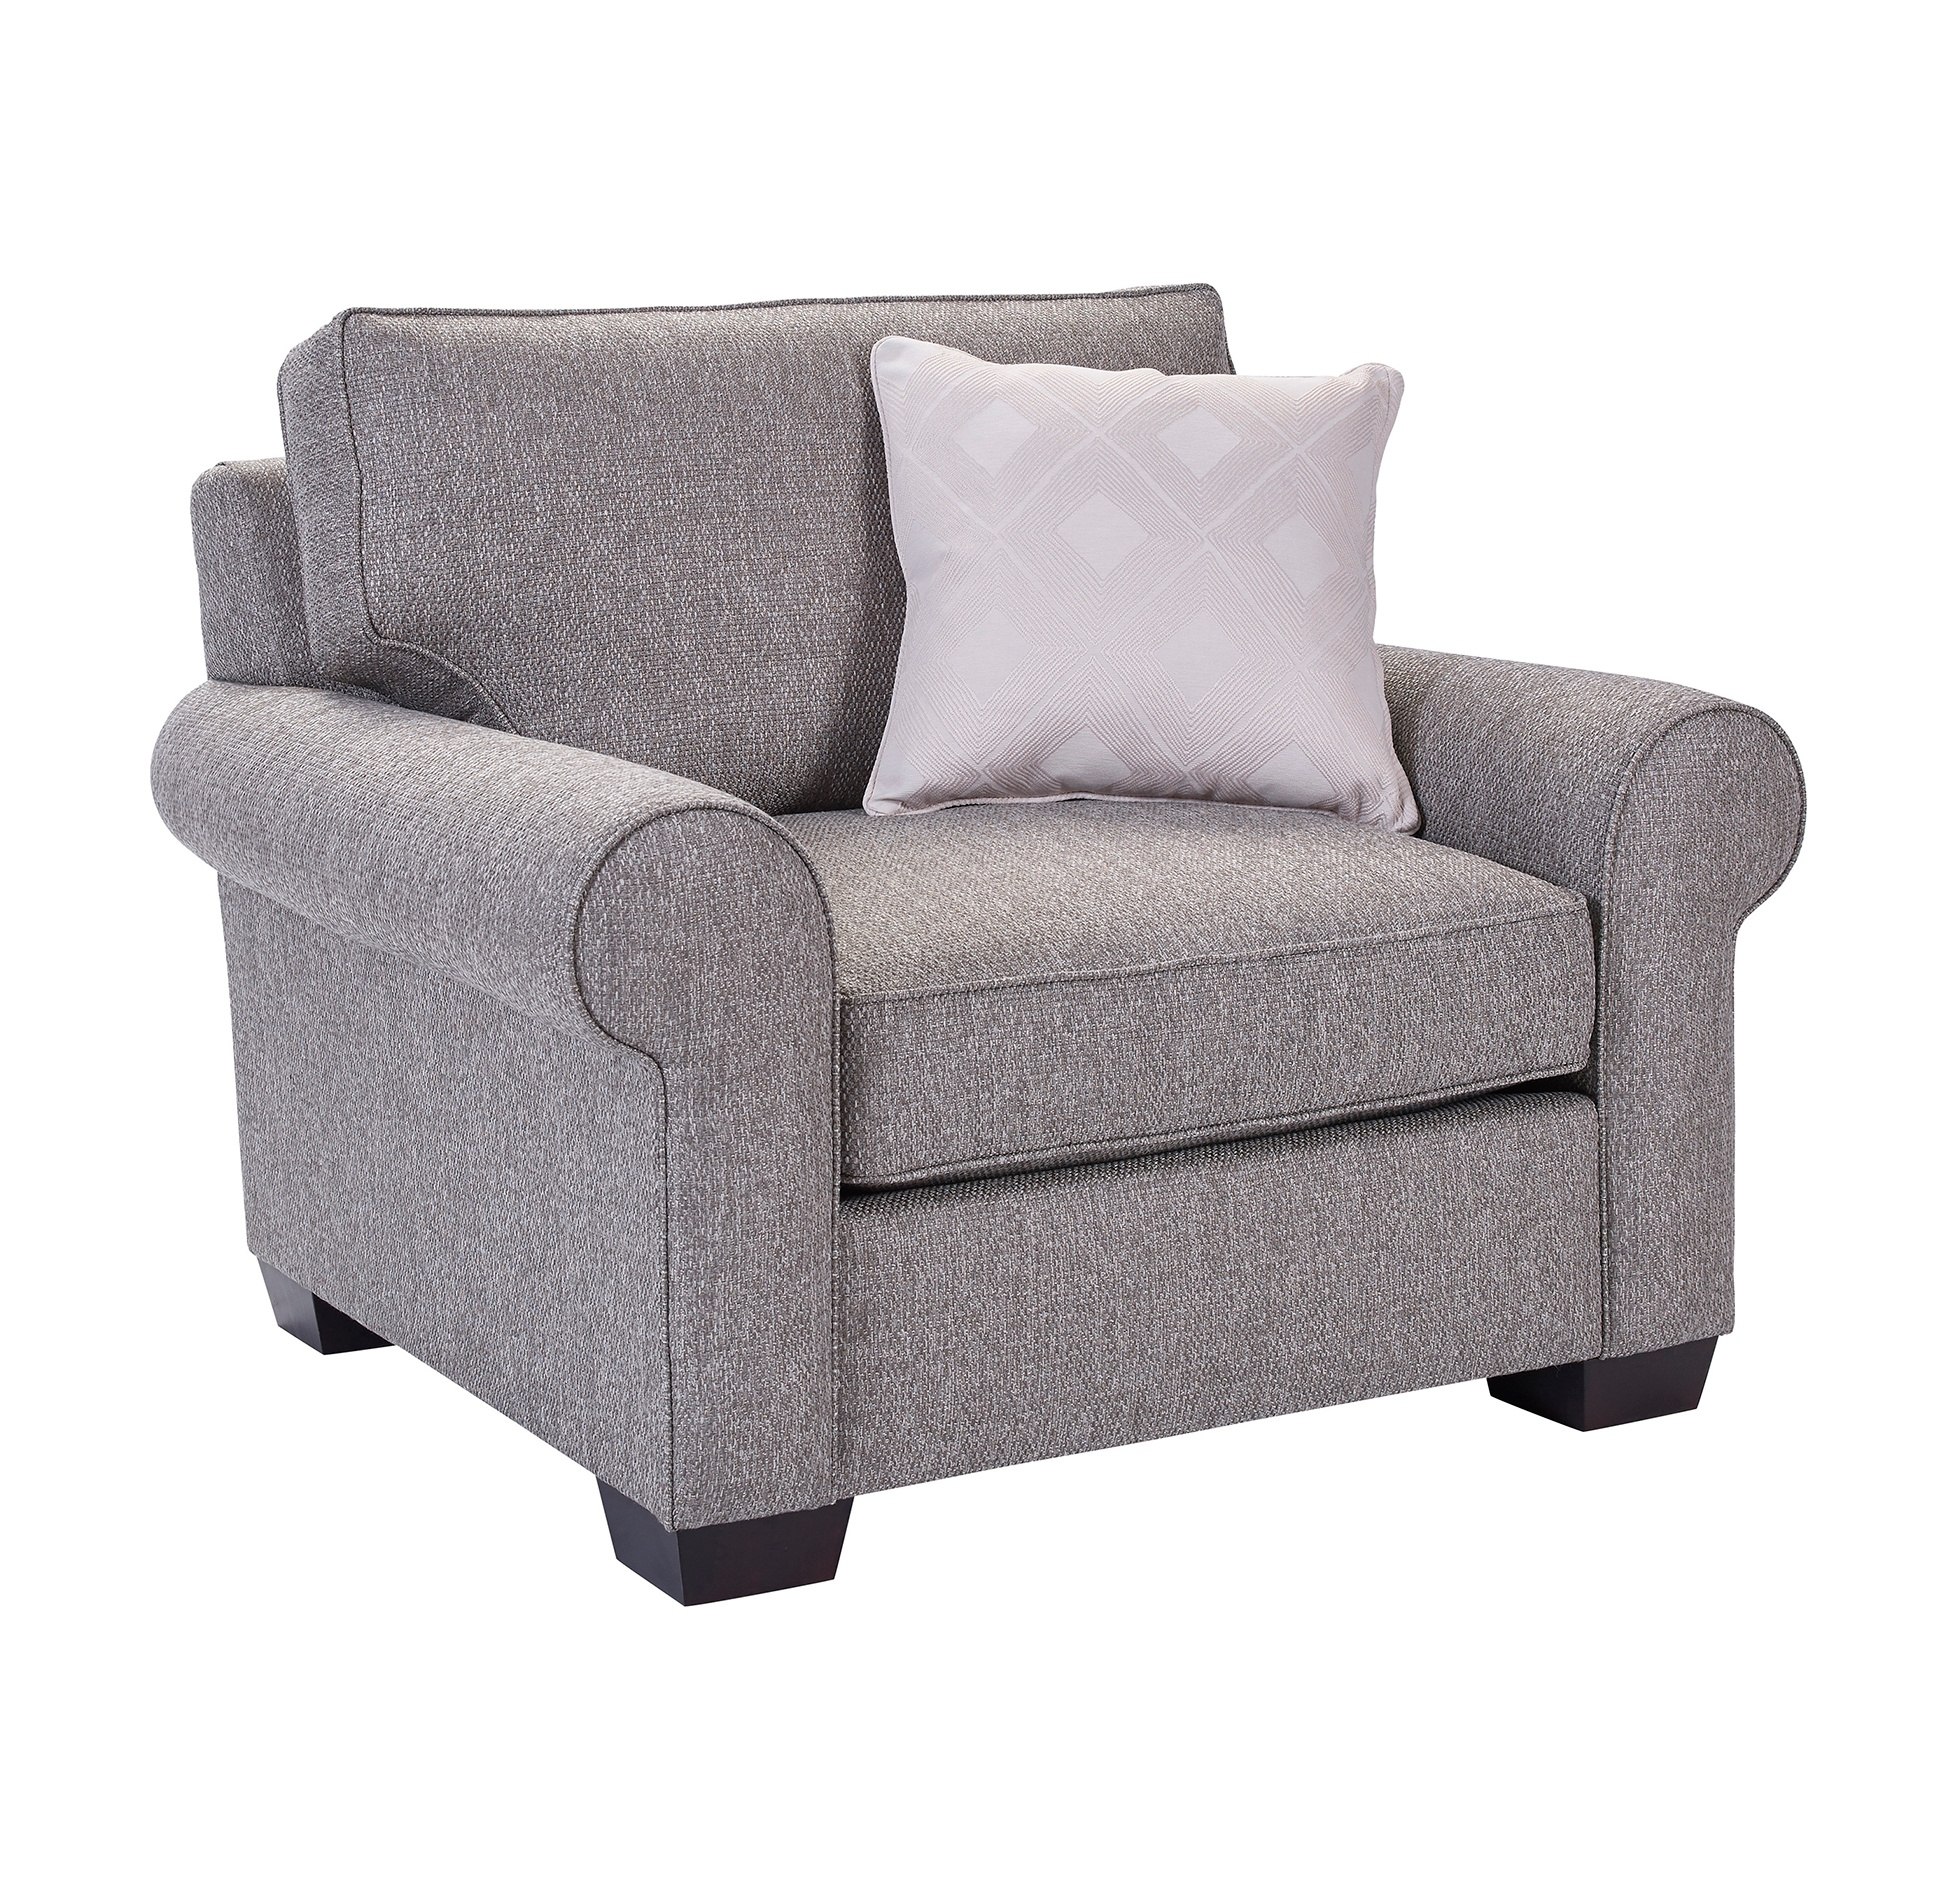 Enjoyable Isadore 4272 Sofa Collection Customize 350 Sofas And Alphanode Cool Chair Designs And Ideas Alphanodeonline